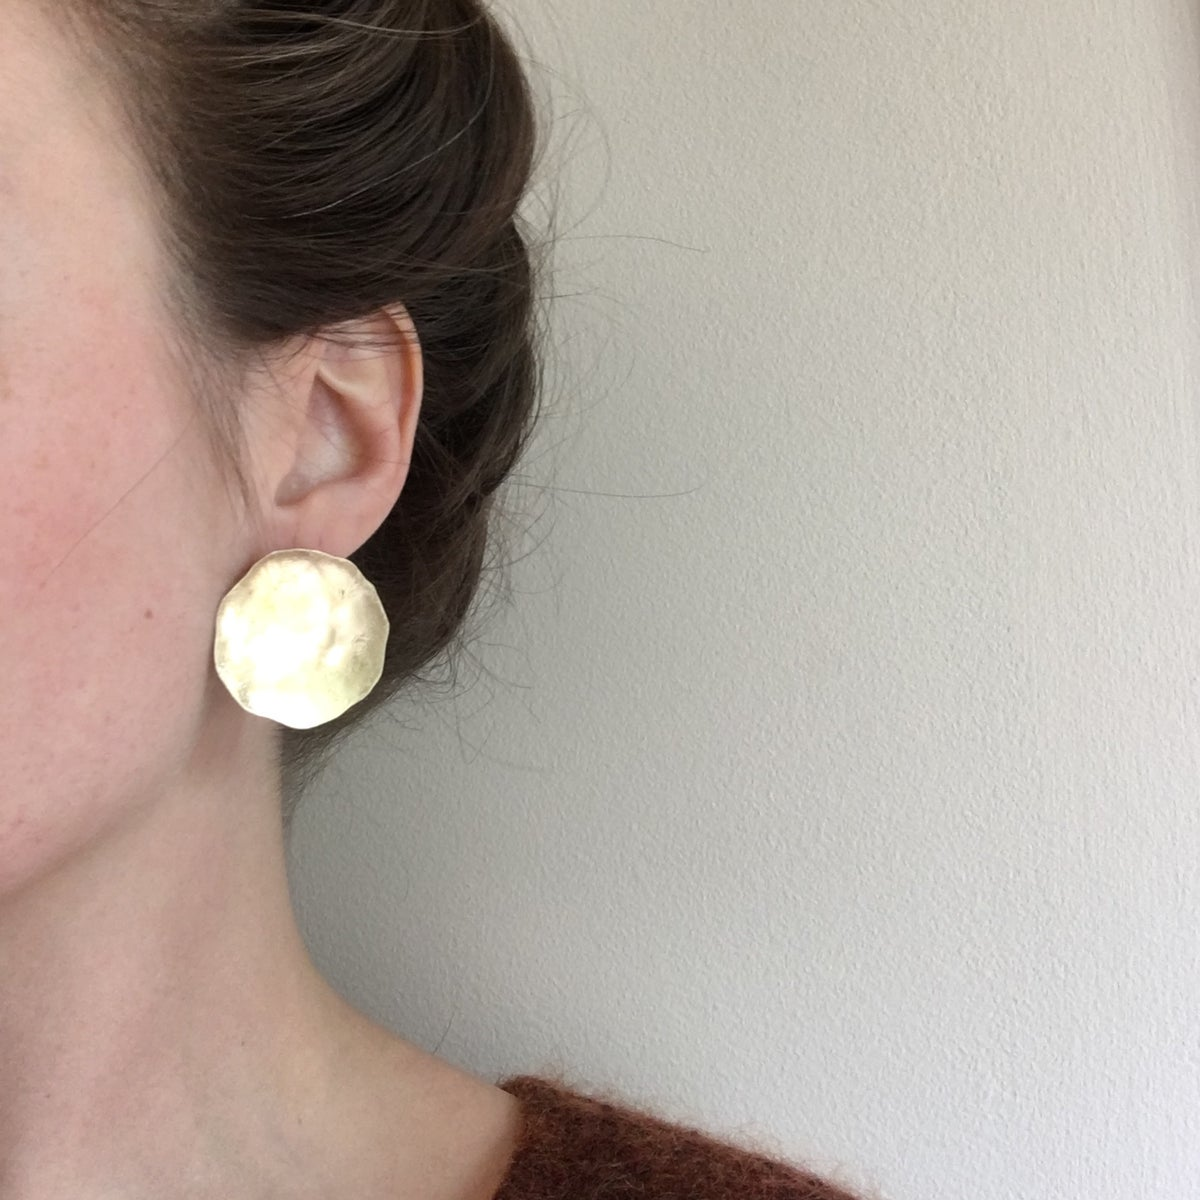 Image of luna earring